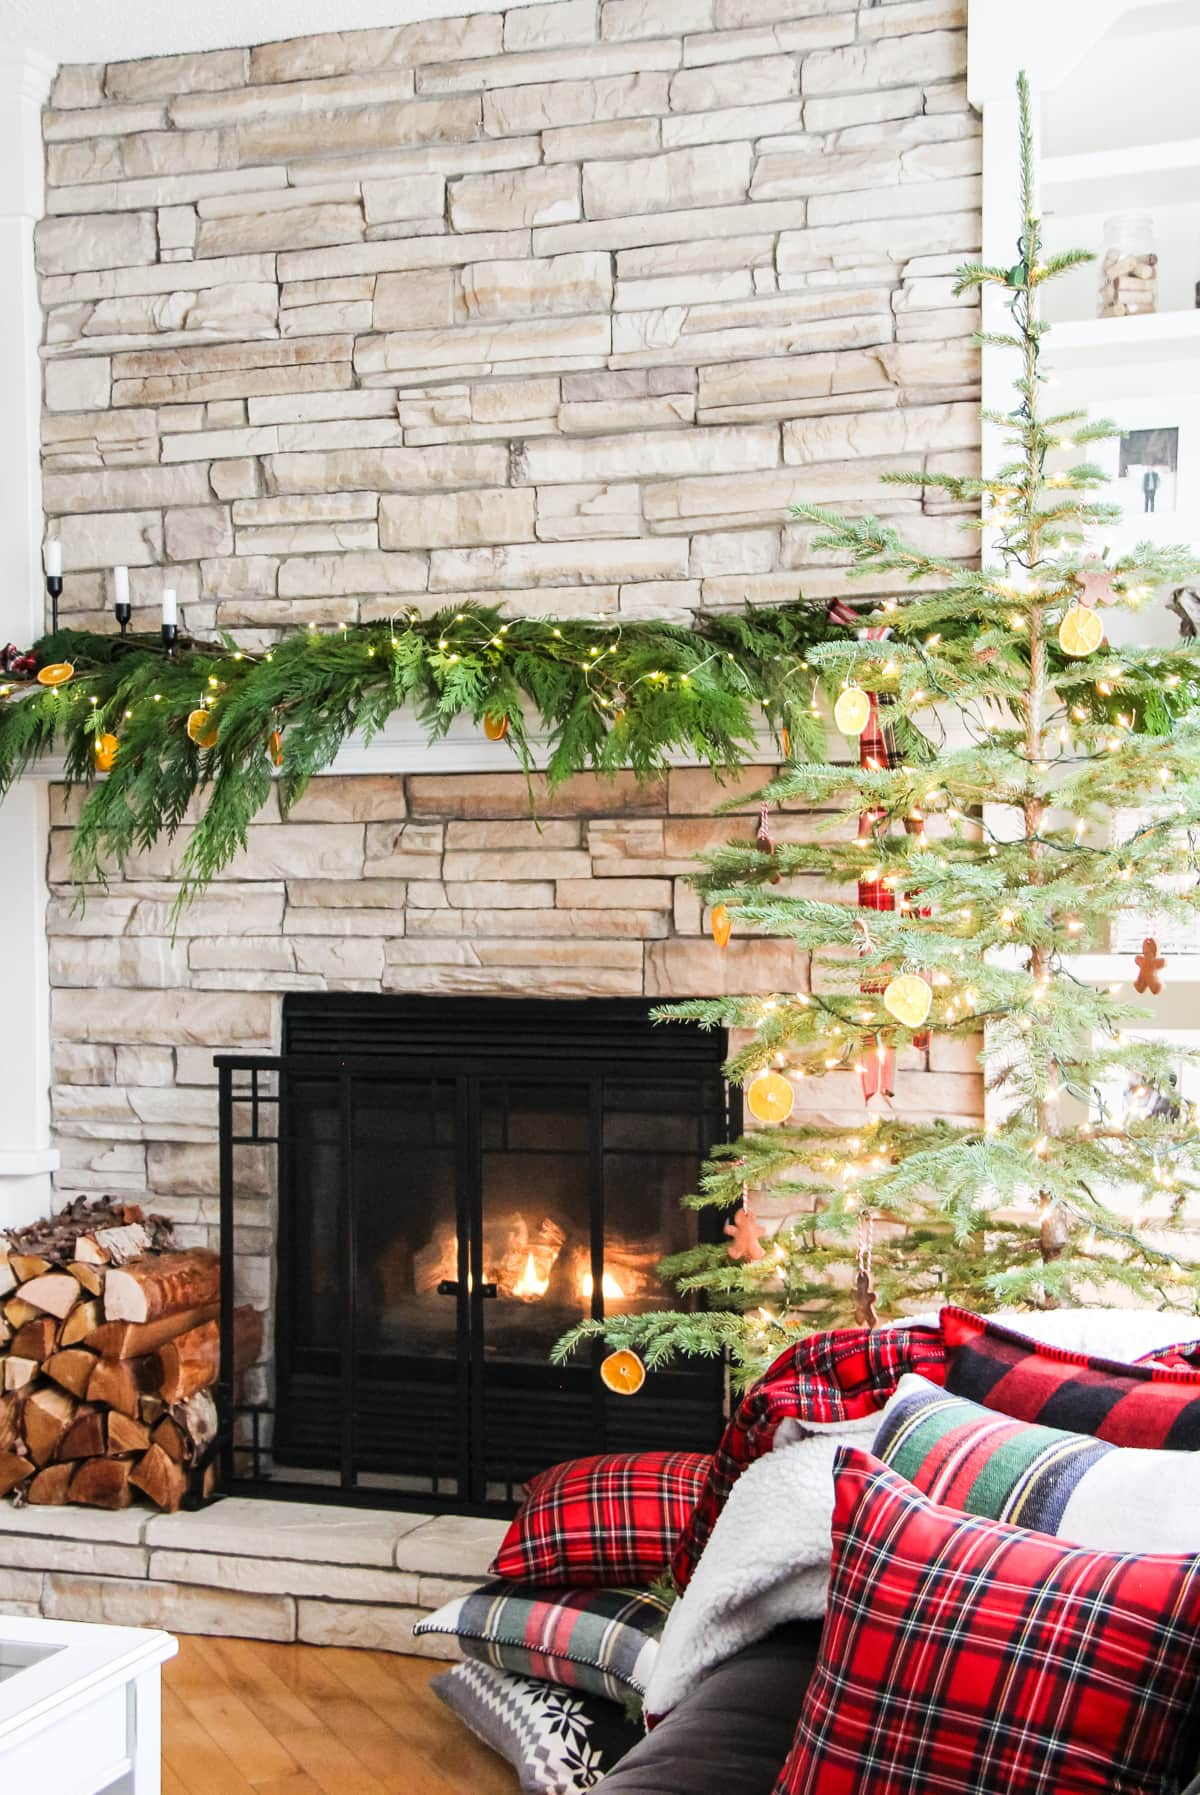 a fireplace mantel decorated with fresh cedar boughs, orange slice ornaments, string fairy lights and plaid ribbon. With a fire roaring in the fireplaces and a stack of wood on the left and a Christmas tree on the right